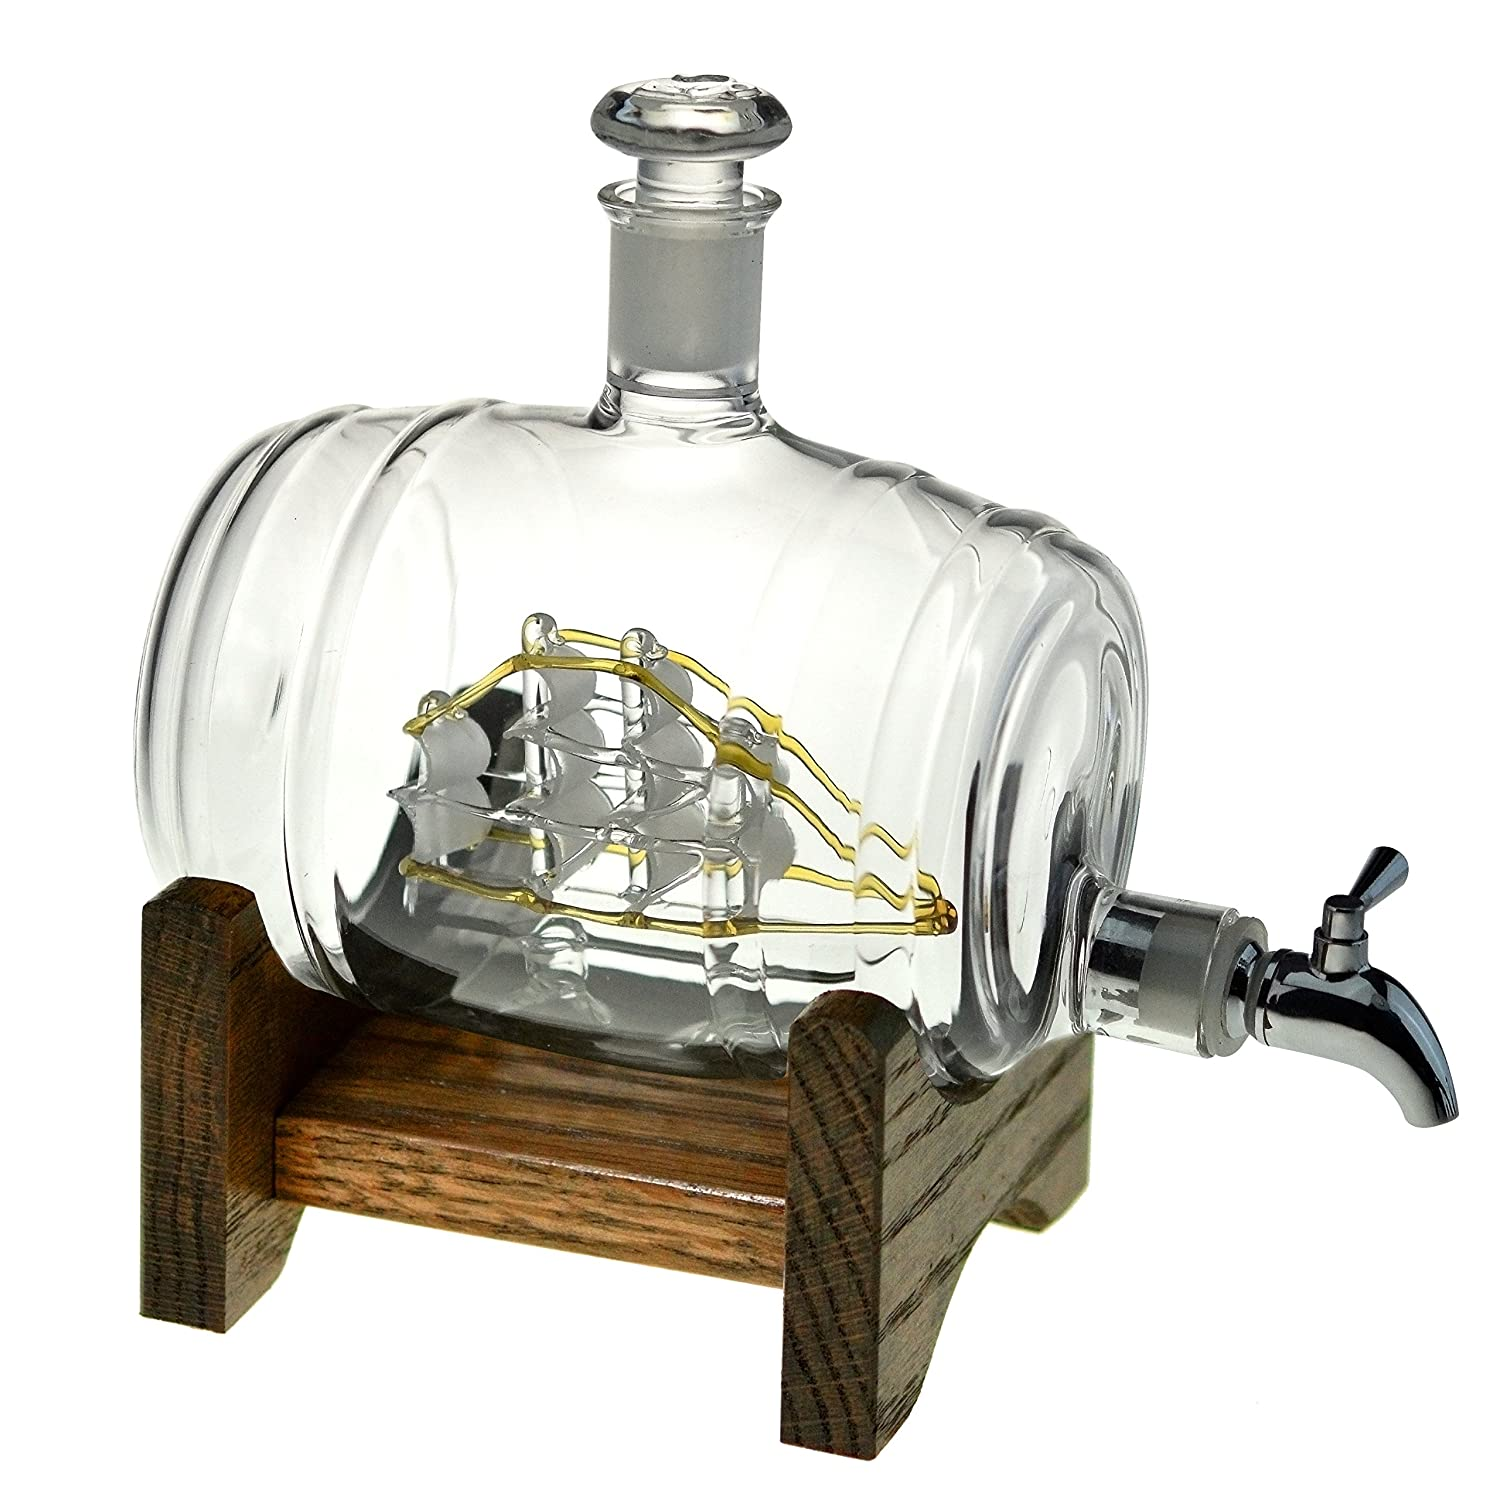 Bourbon Barrel Whiskey Decanter With Ship - 1000ml Liquor Dispenser - Sailing/Boating Gifts for Men and Women, Nautical Decor Retirement Gift (Tomoka Gold)